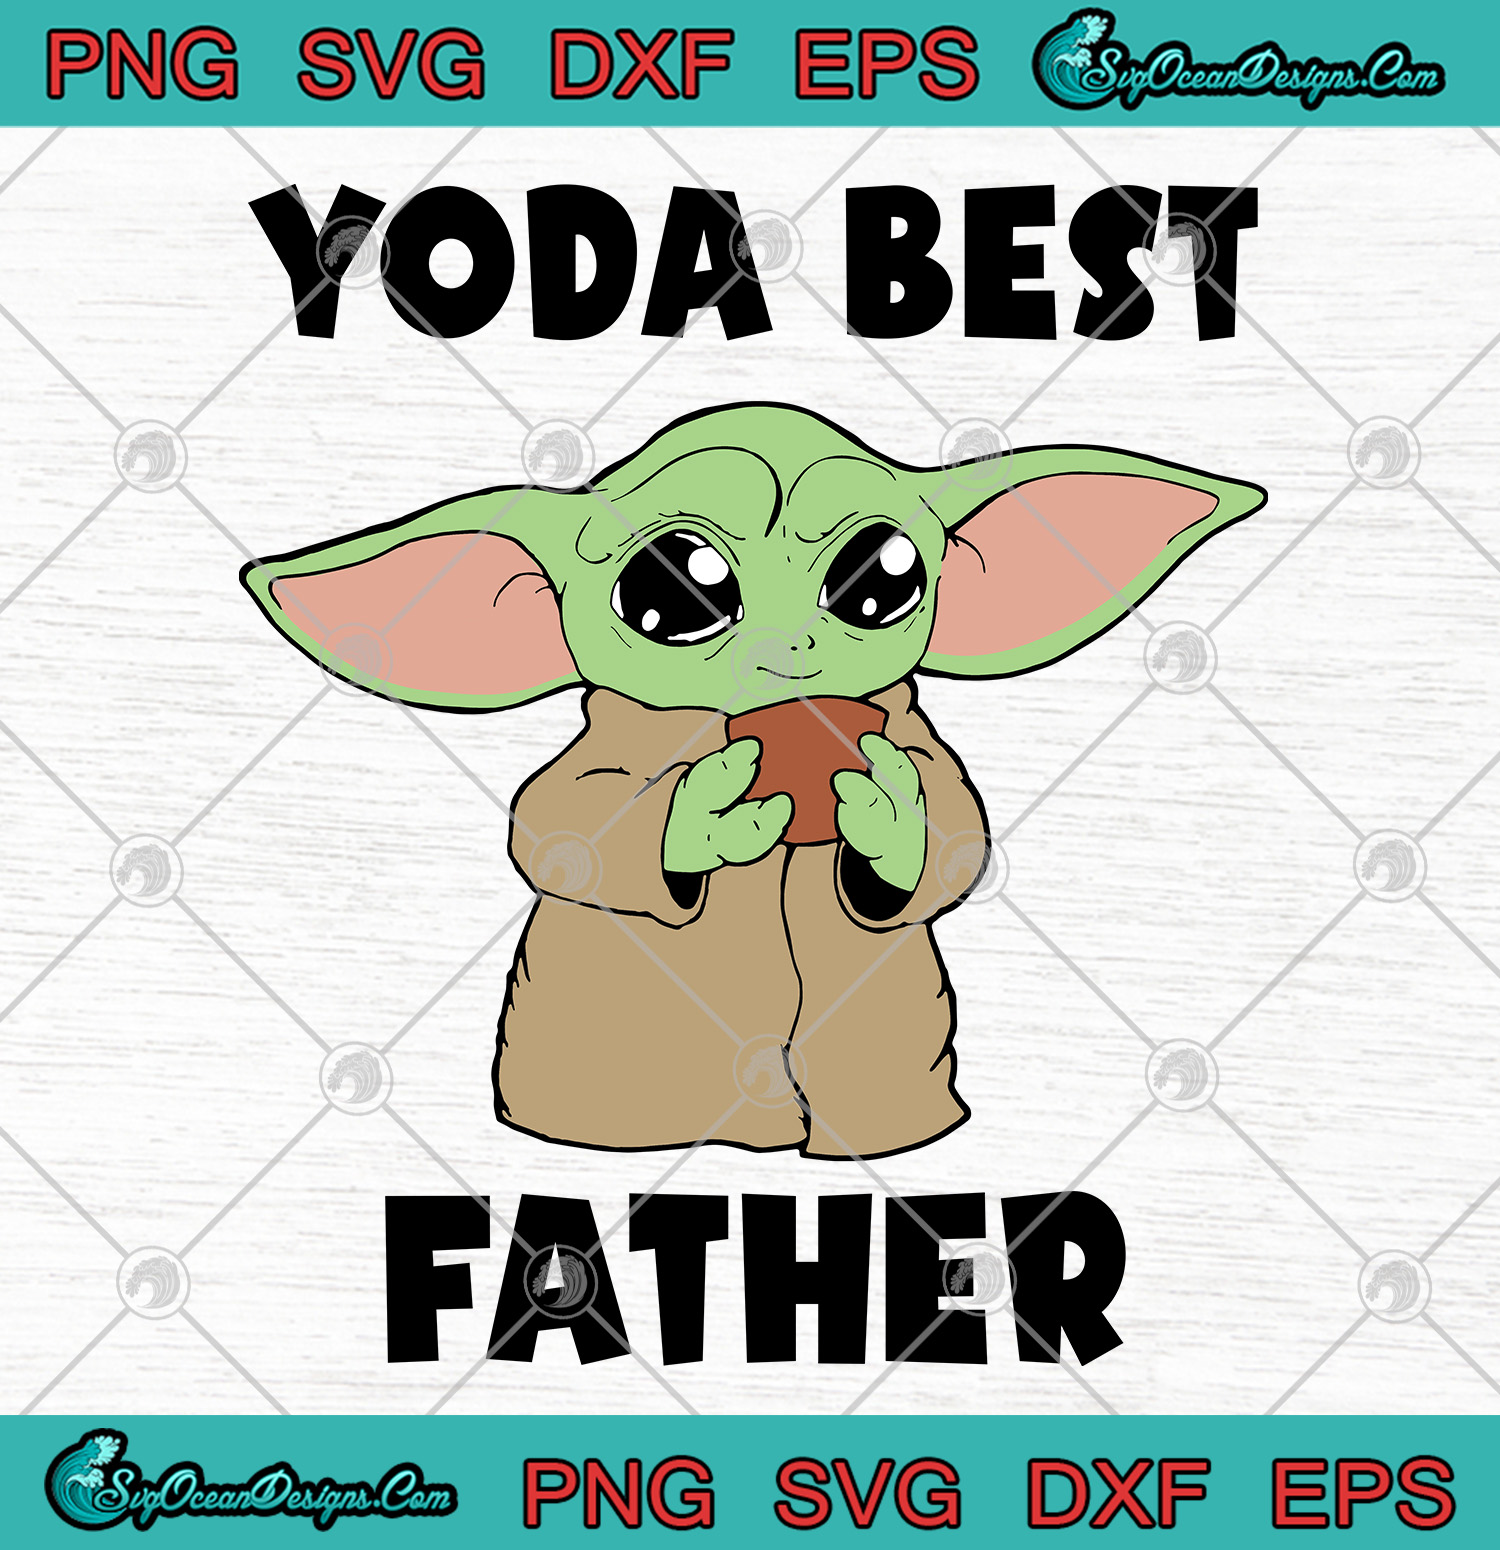 Free The food my food eats for breakfast. Yoda Best Father Svg Png Eps Dxf Baby Yoda Best Father S Day Svg Art Vector Designs Digital Download SVG, PNG, EPS, DXF File